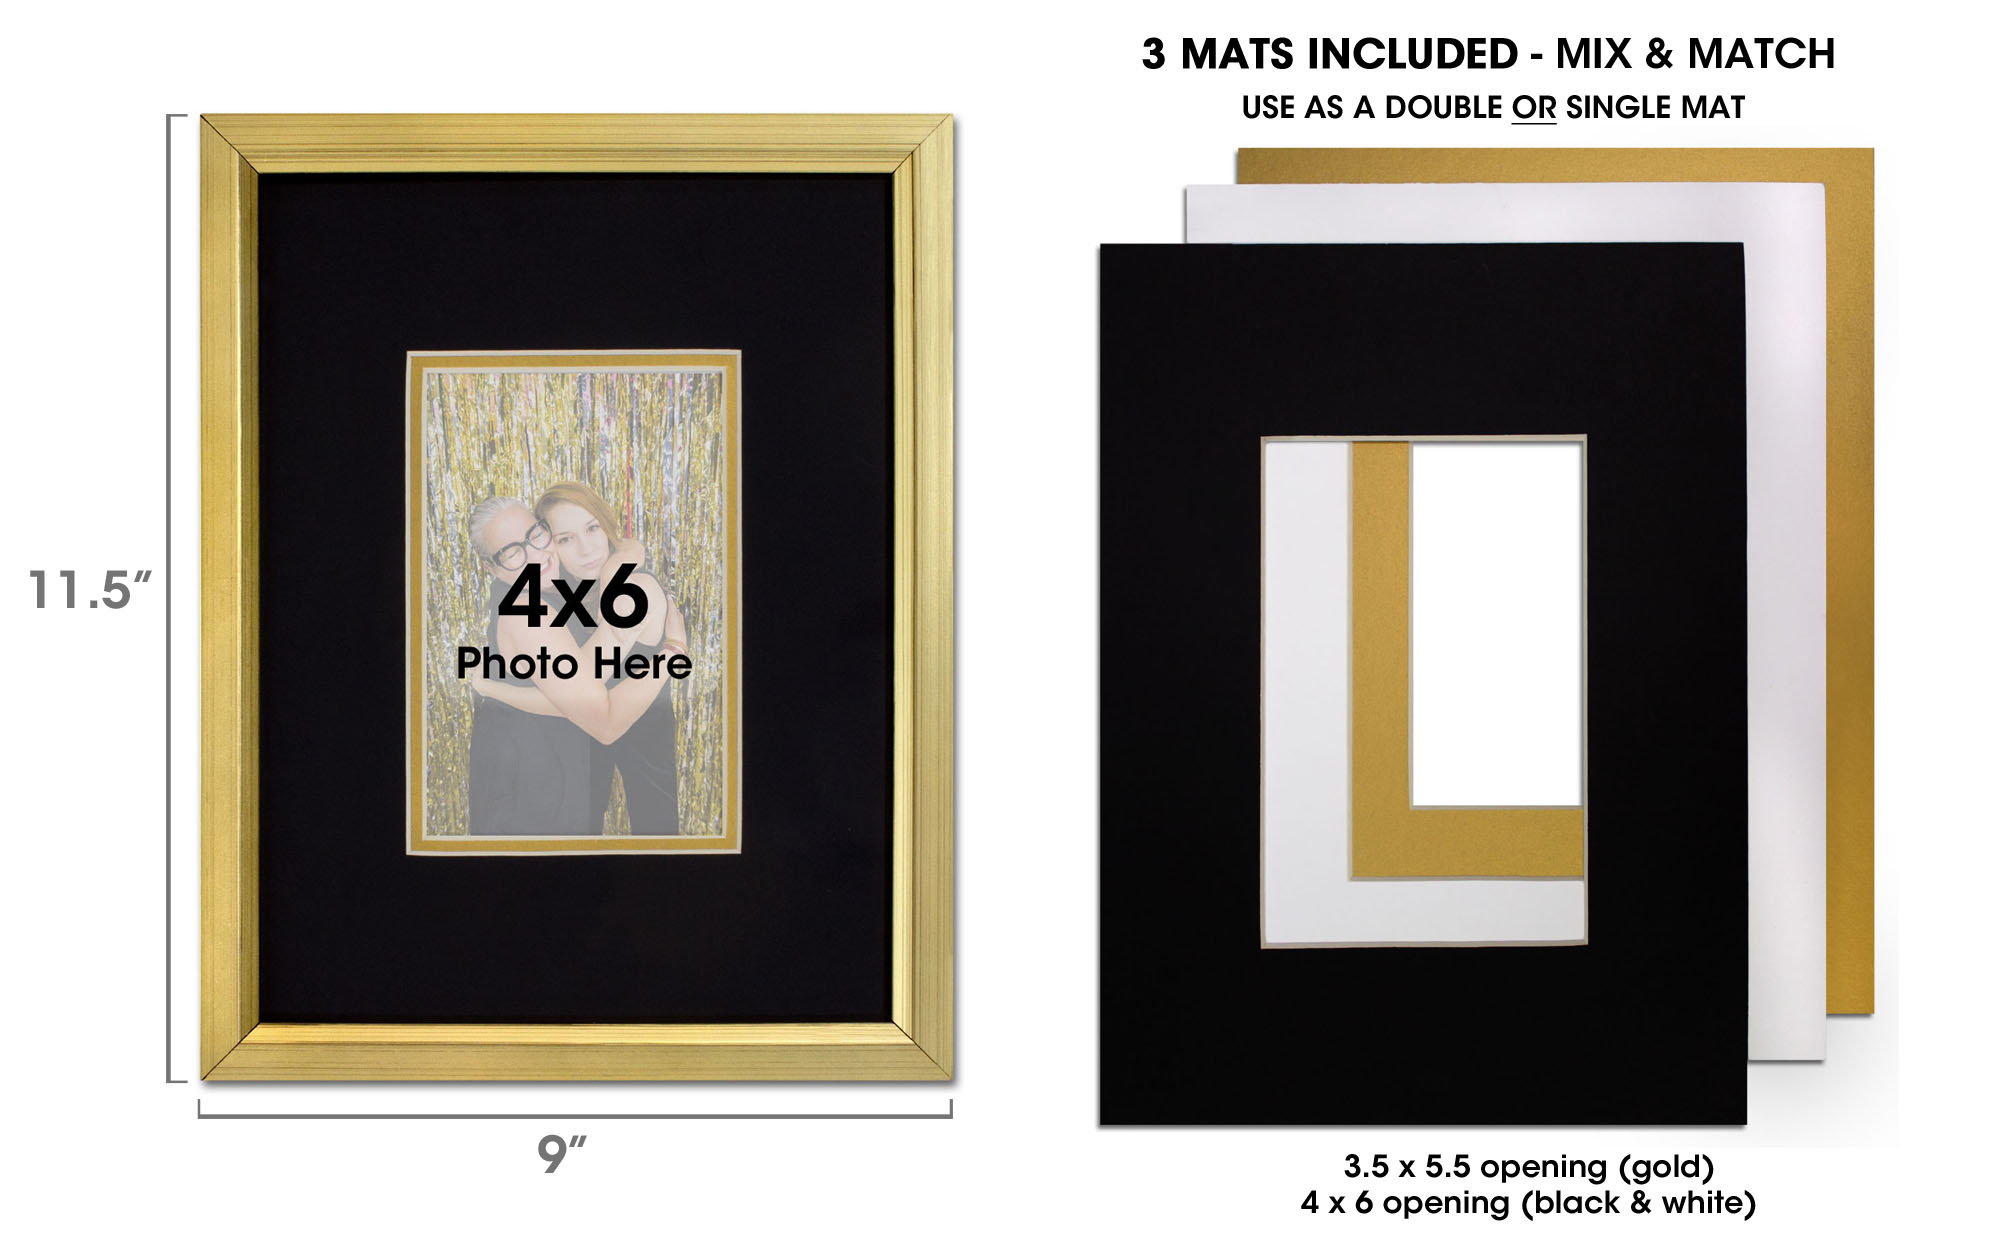 Gold Picture Frame For 4x6 Photo